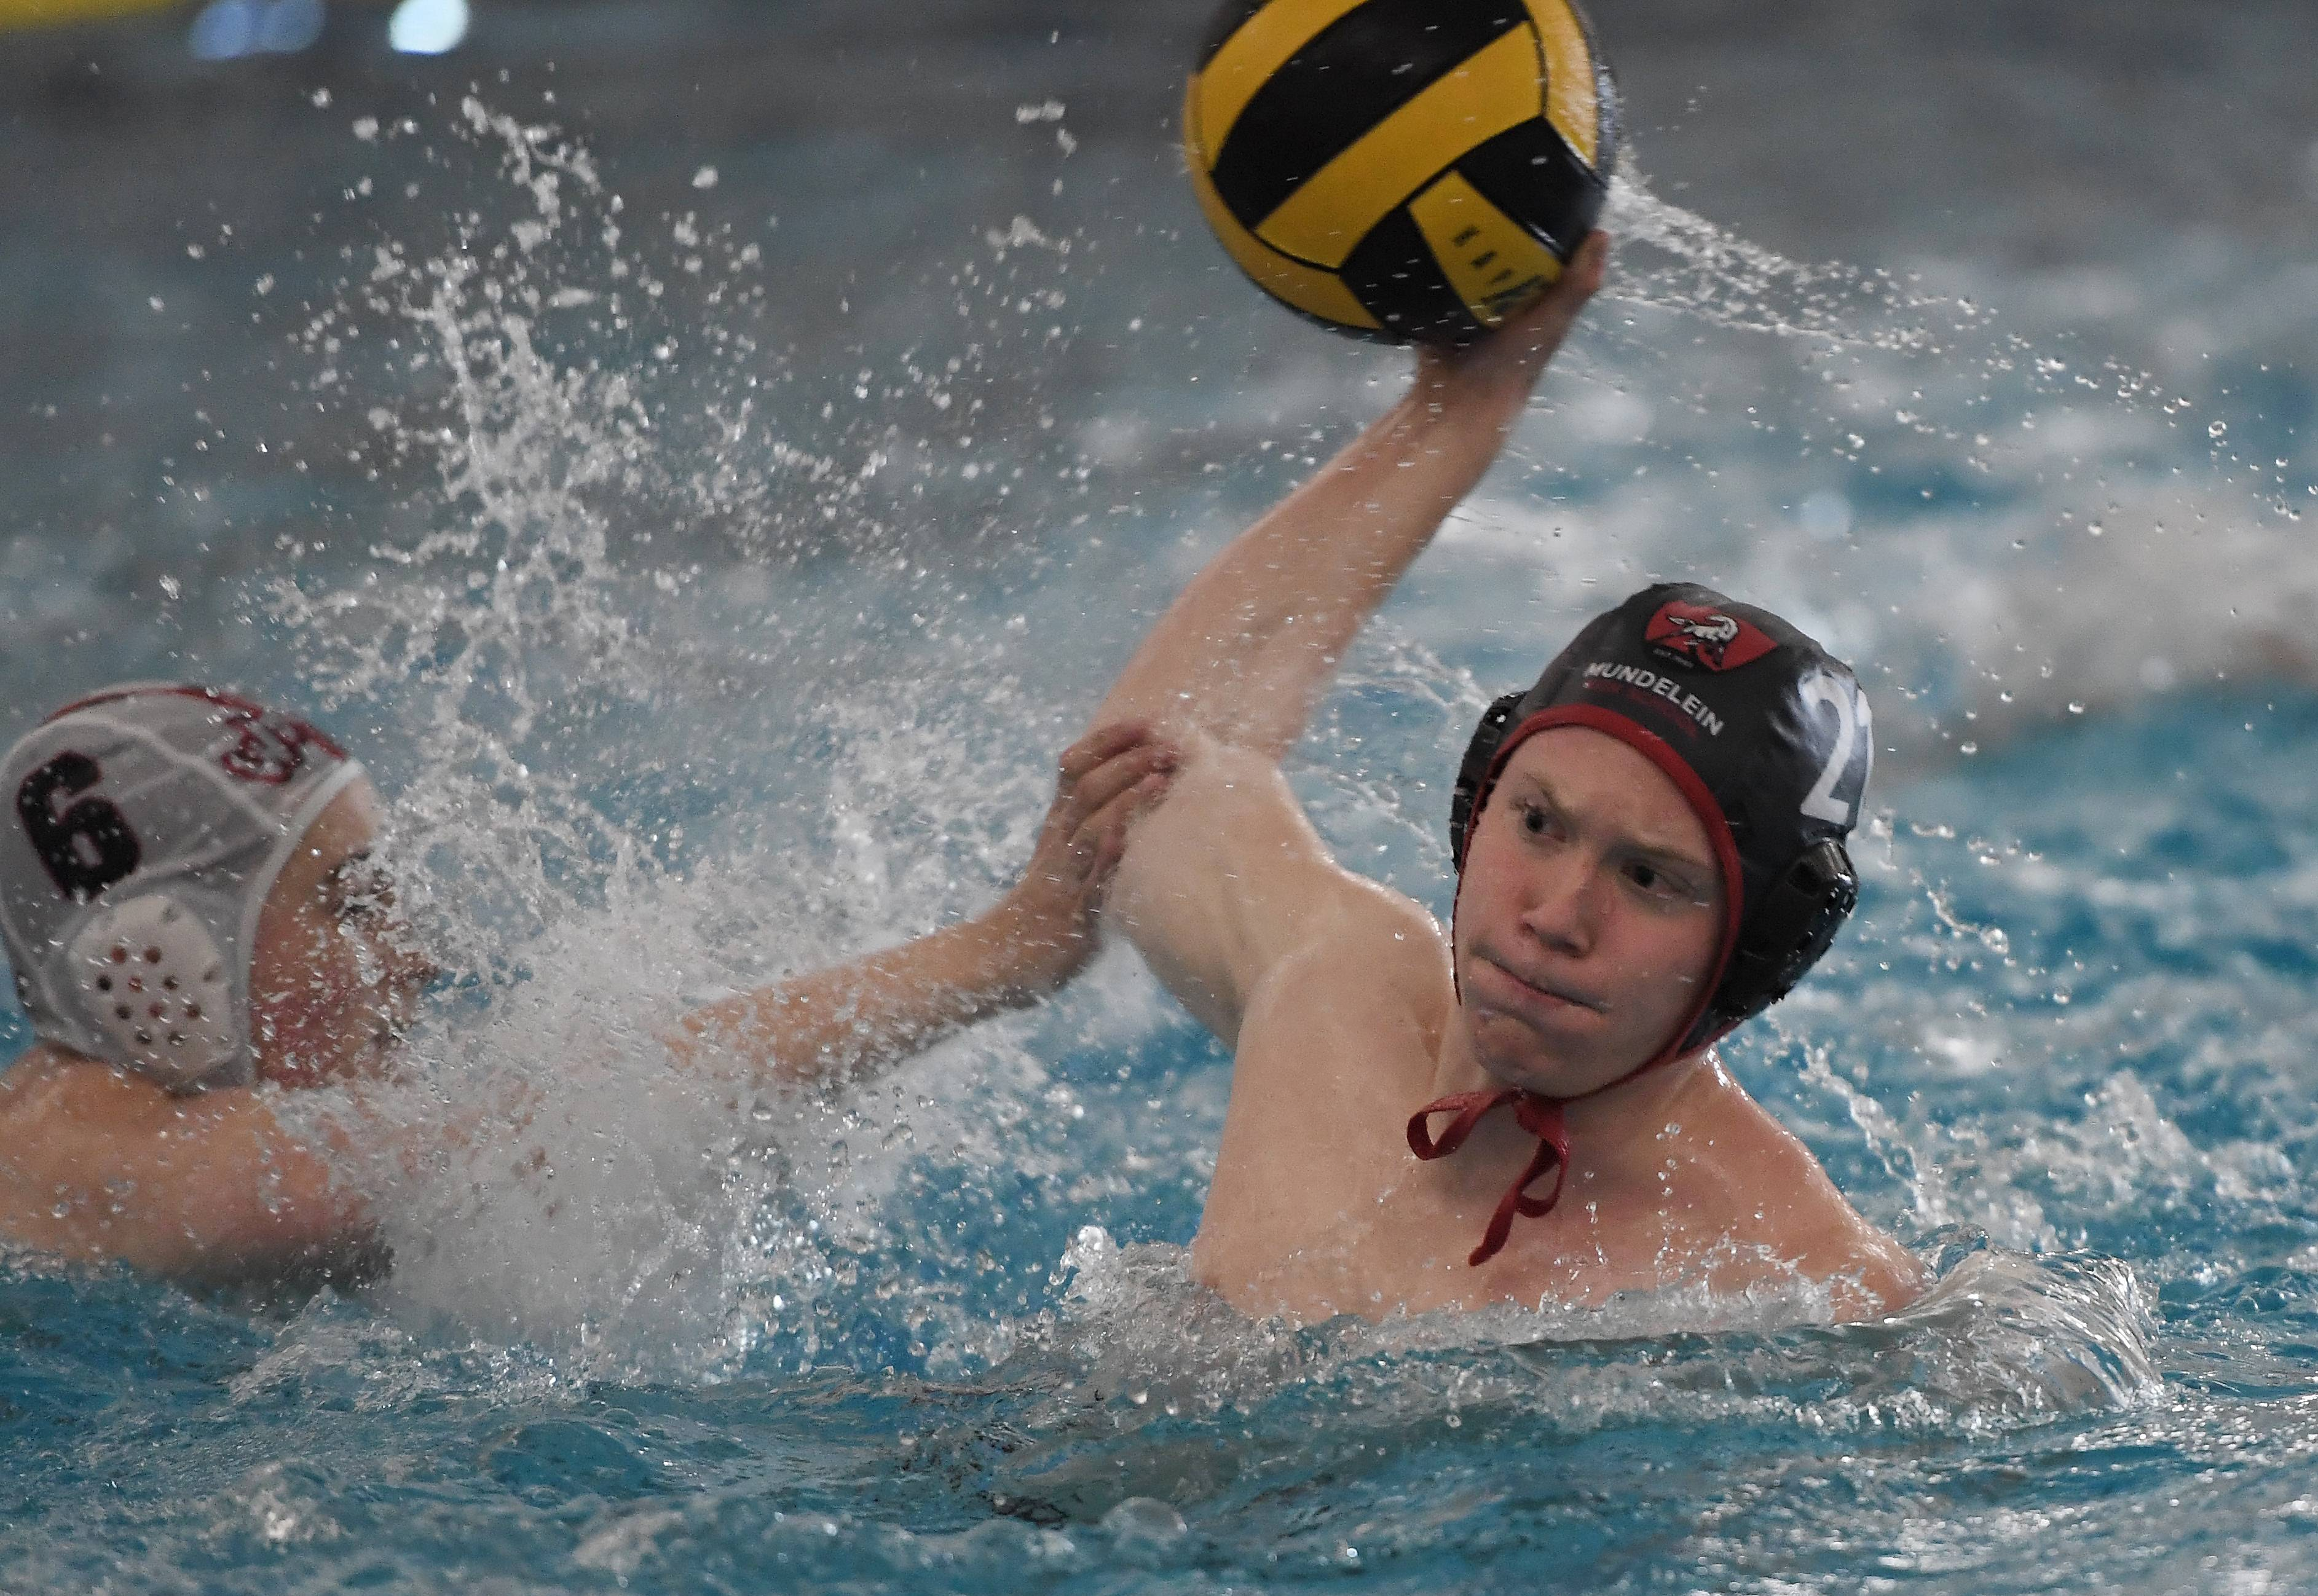 Mundelein's Hunter Magee is unstoppable against Nile West's defense in the boys water polo varsity invite at Mundelein High School on Saturday.